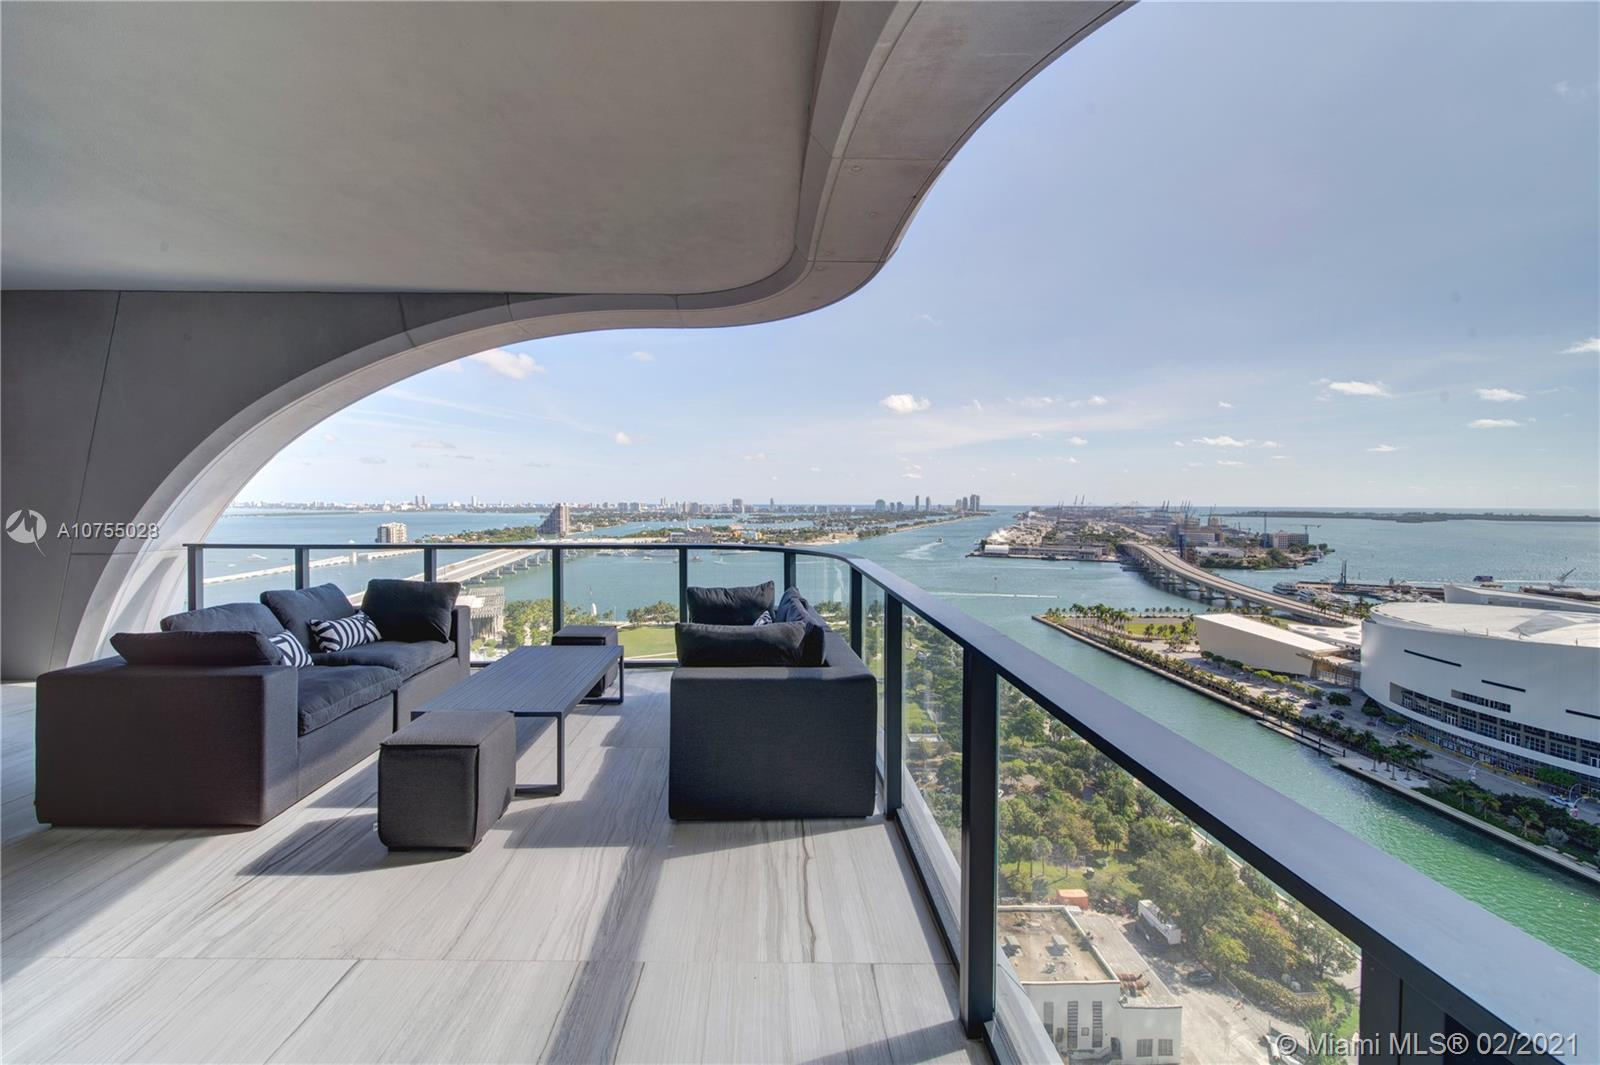 Zaha Hadid's visionary architecture comes to life once again with One Thousand Museum Miami: the 62-story tower was built to impress, boasting landmark design and featuring a private collection of half-floor residences and full-floor penthouses for a total of 83 limited collection museum-quality residences. This amazing residence located on the 25th floor features SE exposures; corner flow- thru unit has amazing views of Biscayne Bay, downtown Miami and gorgeous sunset views. This uniquely privileged development sets a high bar with its extraordinary amenities and unprecedented level of service.Interiors are designed and fully customized by German industrial and luxury designer Uli Petzold.